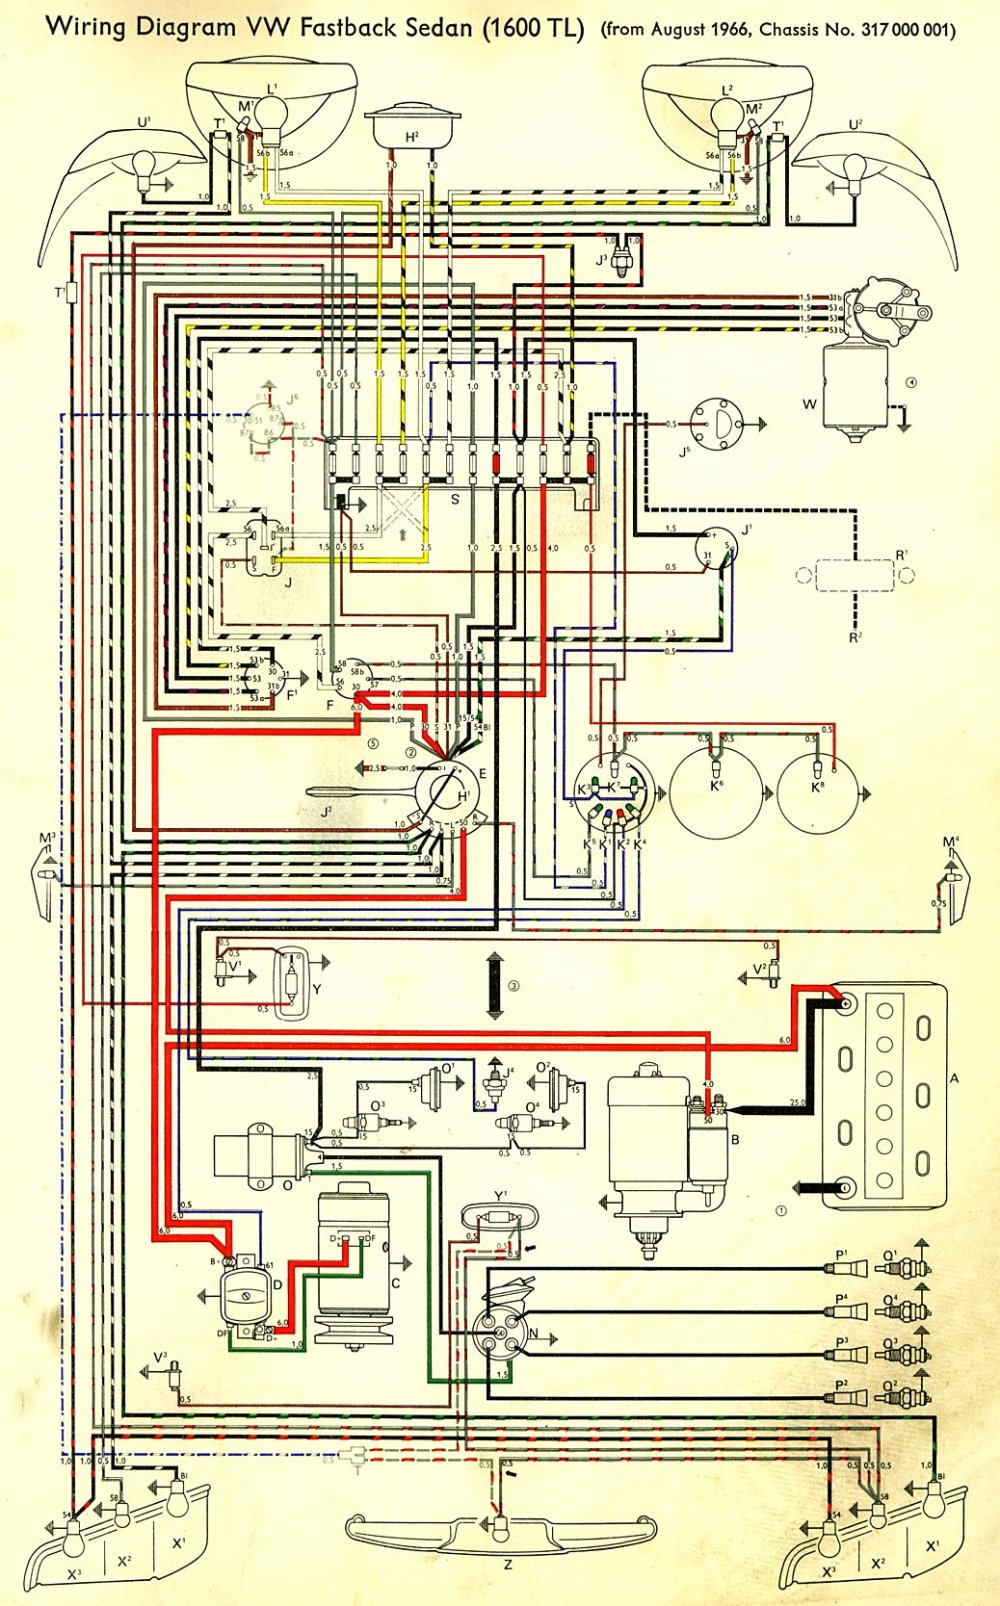 medium resolution of porsche 912 wiring diagram wiring diagram name1967 porsche 912 wiring diagram wiring diagrams favorites porsche 912